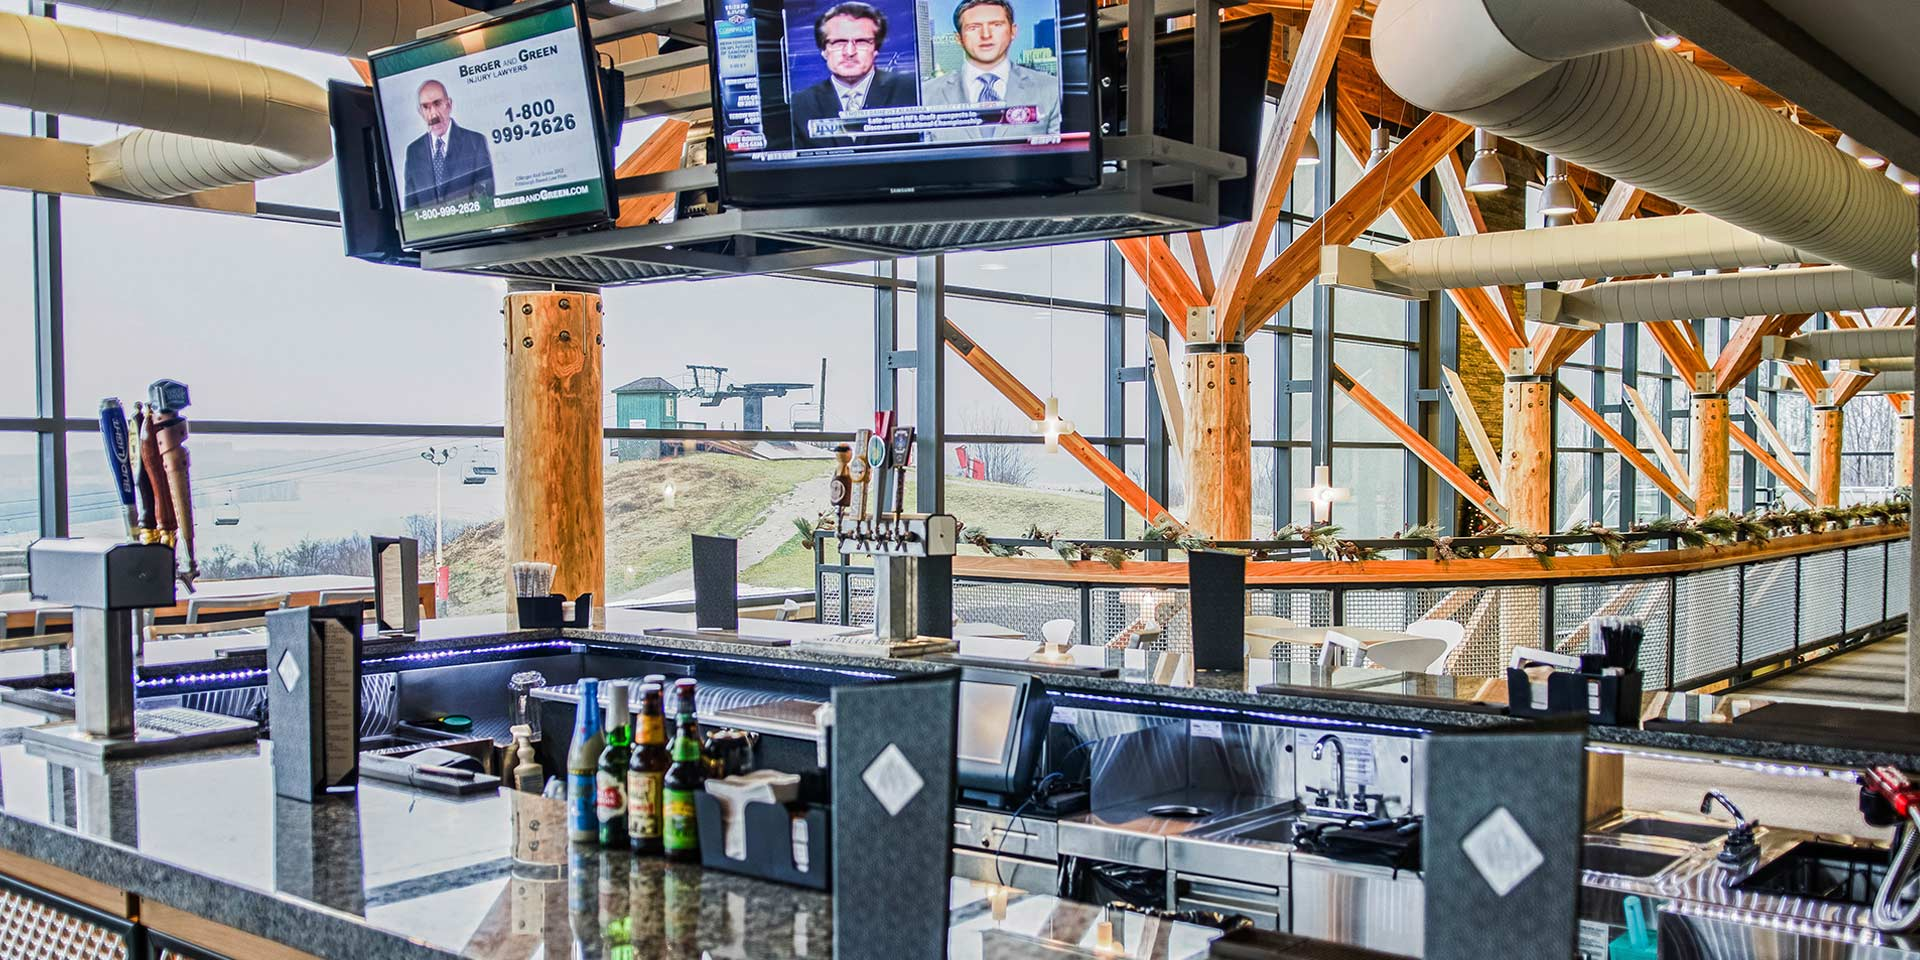 Sports bar area with tvs